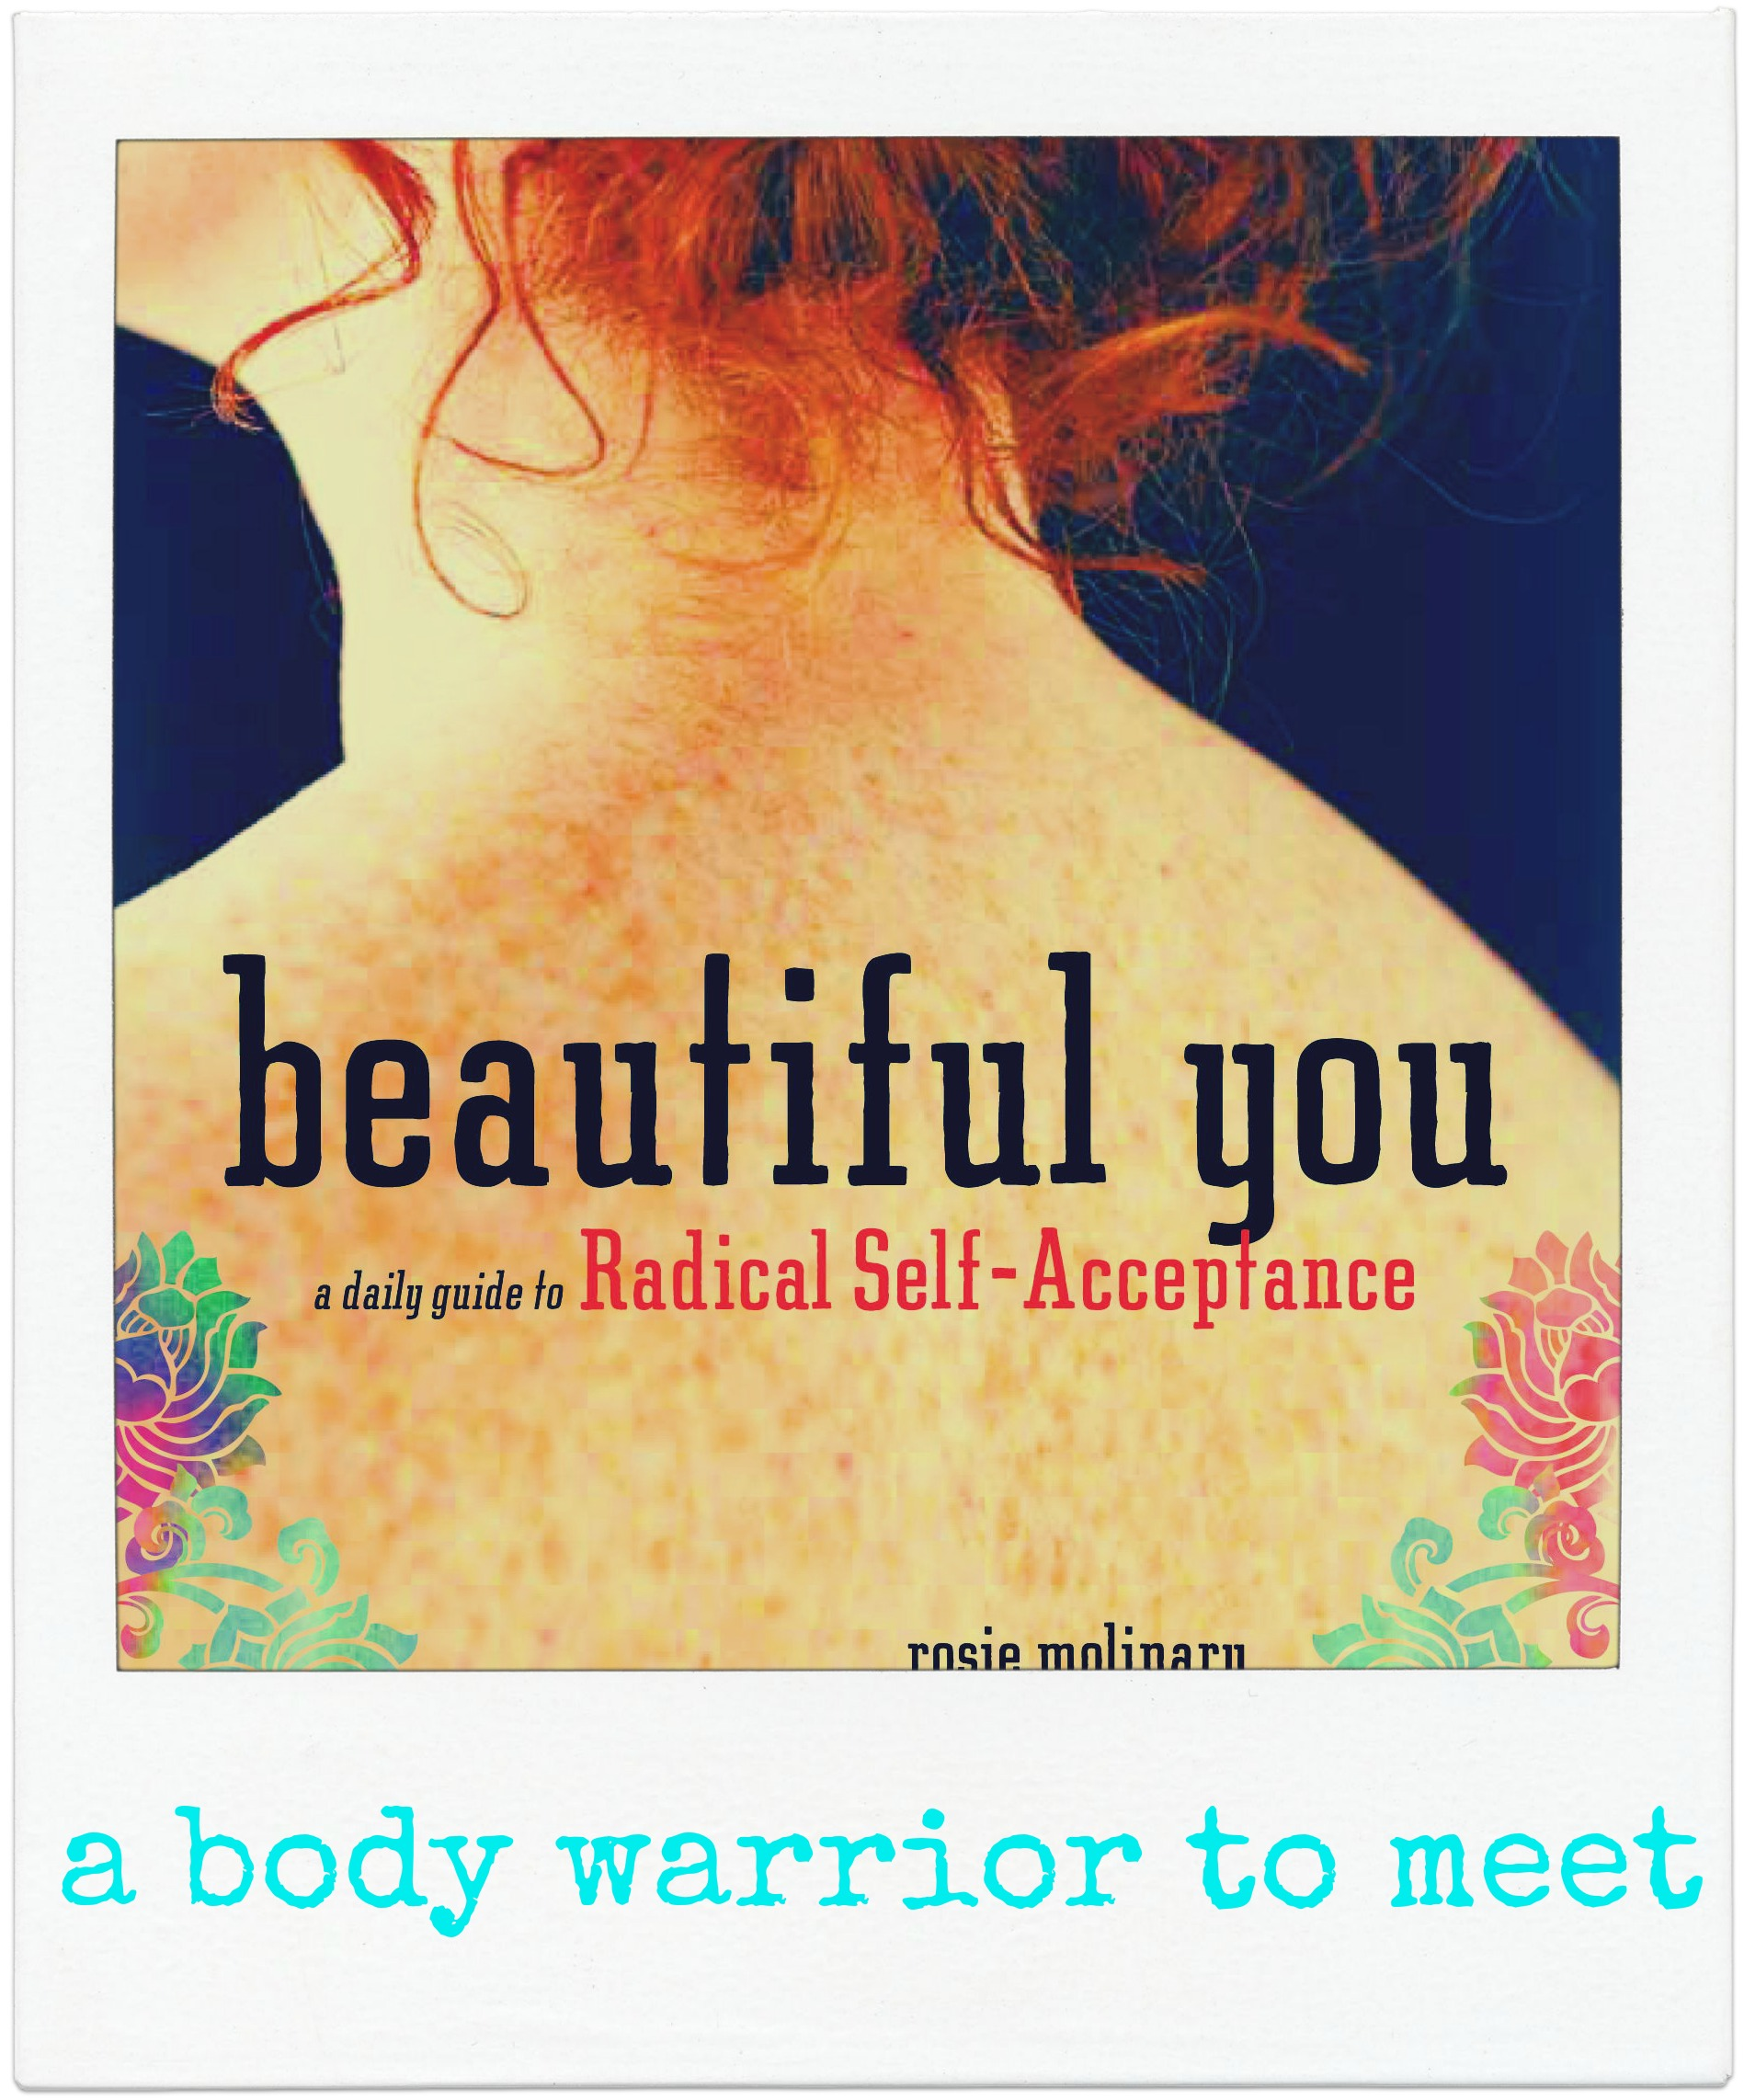 a body warrior to meet